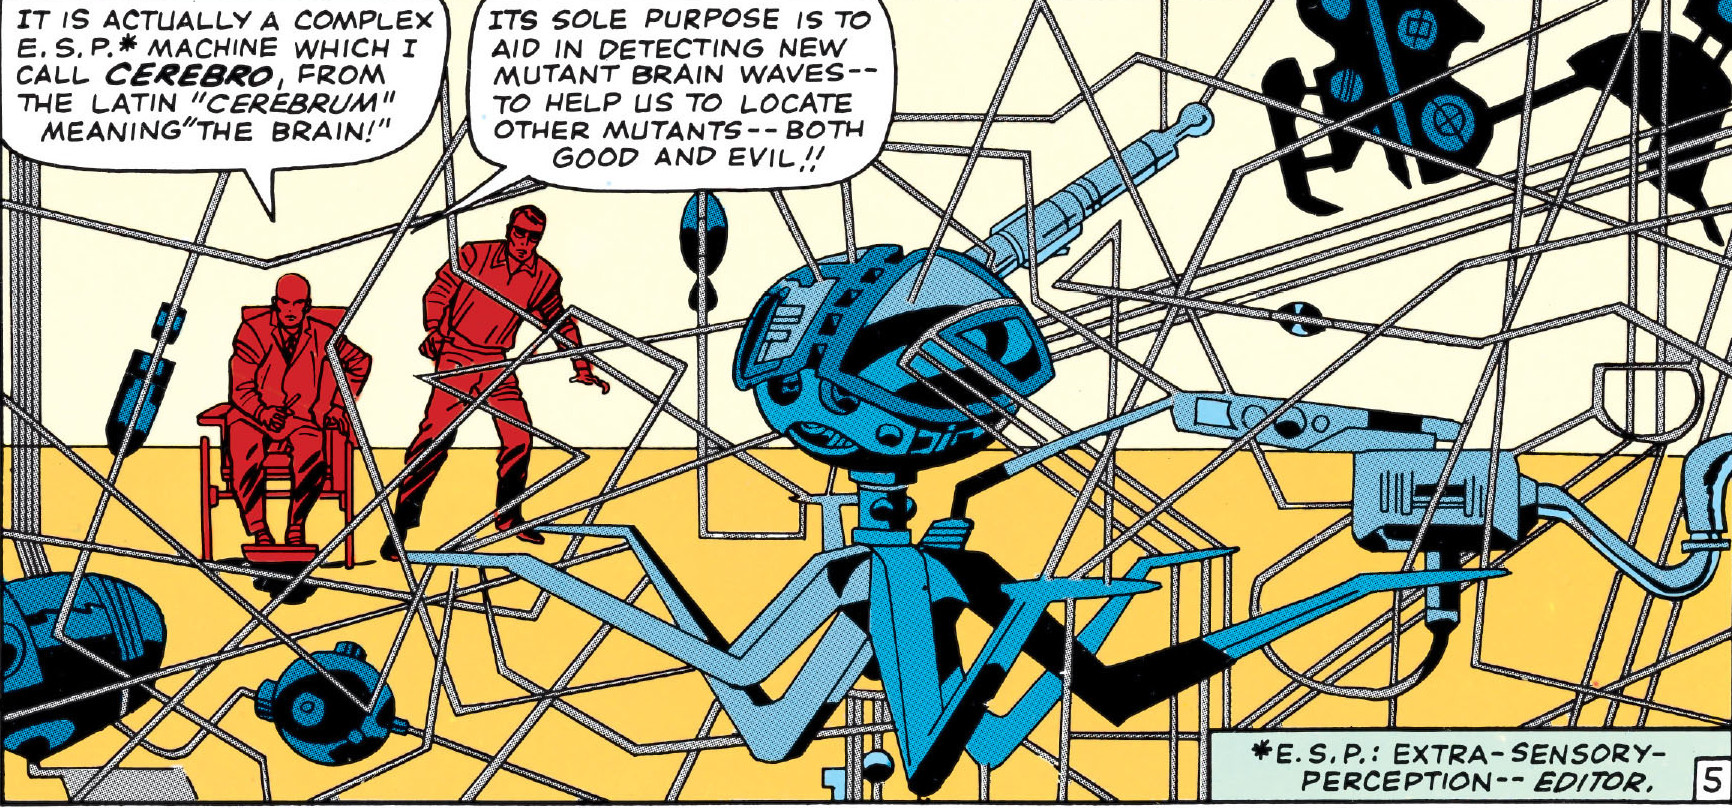 In 'X-Men' (1964) #7, Professor Xavier speaks of Cerebro an ESP device used to detect mutants on Earth.